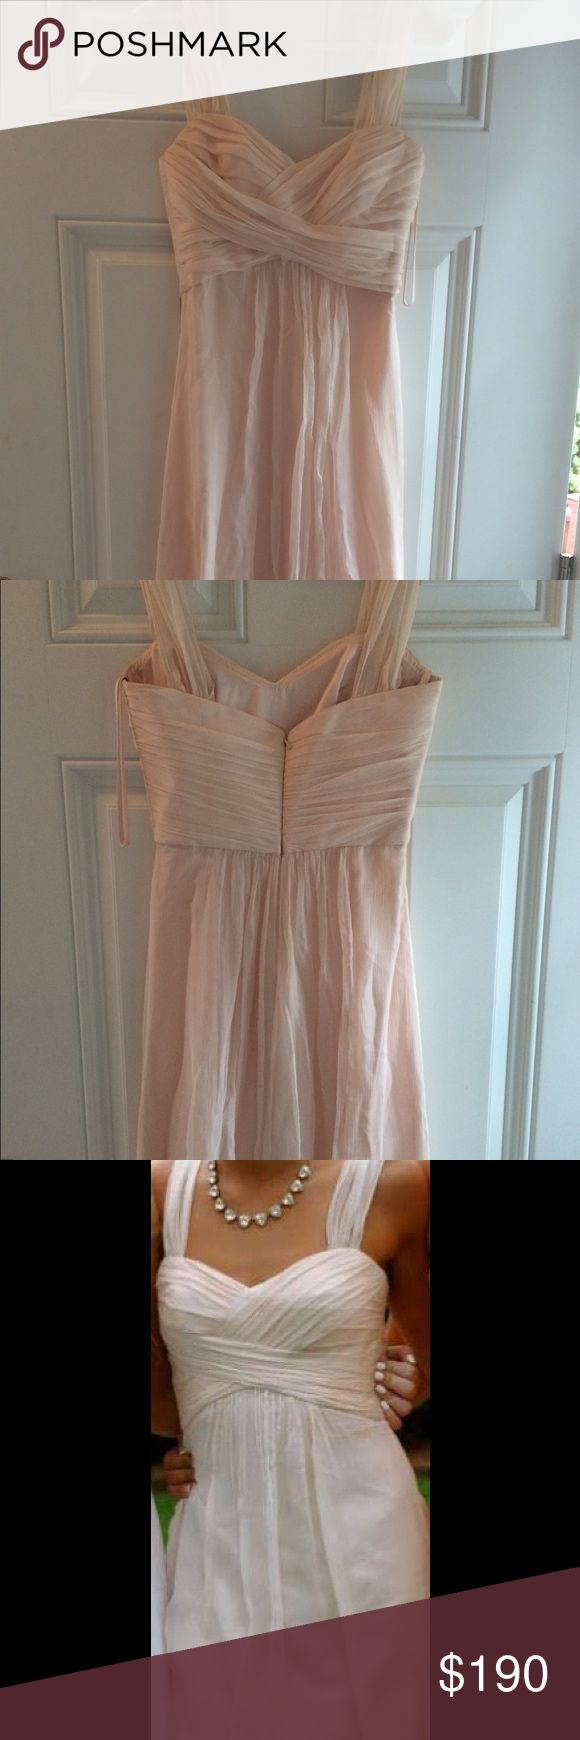 Amsale champagne prom dress. Amsale champagne prom dress. 100% silk. Worn once. Good condition. Offers accepted! Amsale Dresses Prom